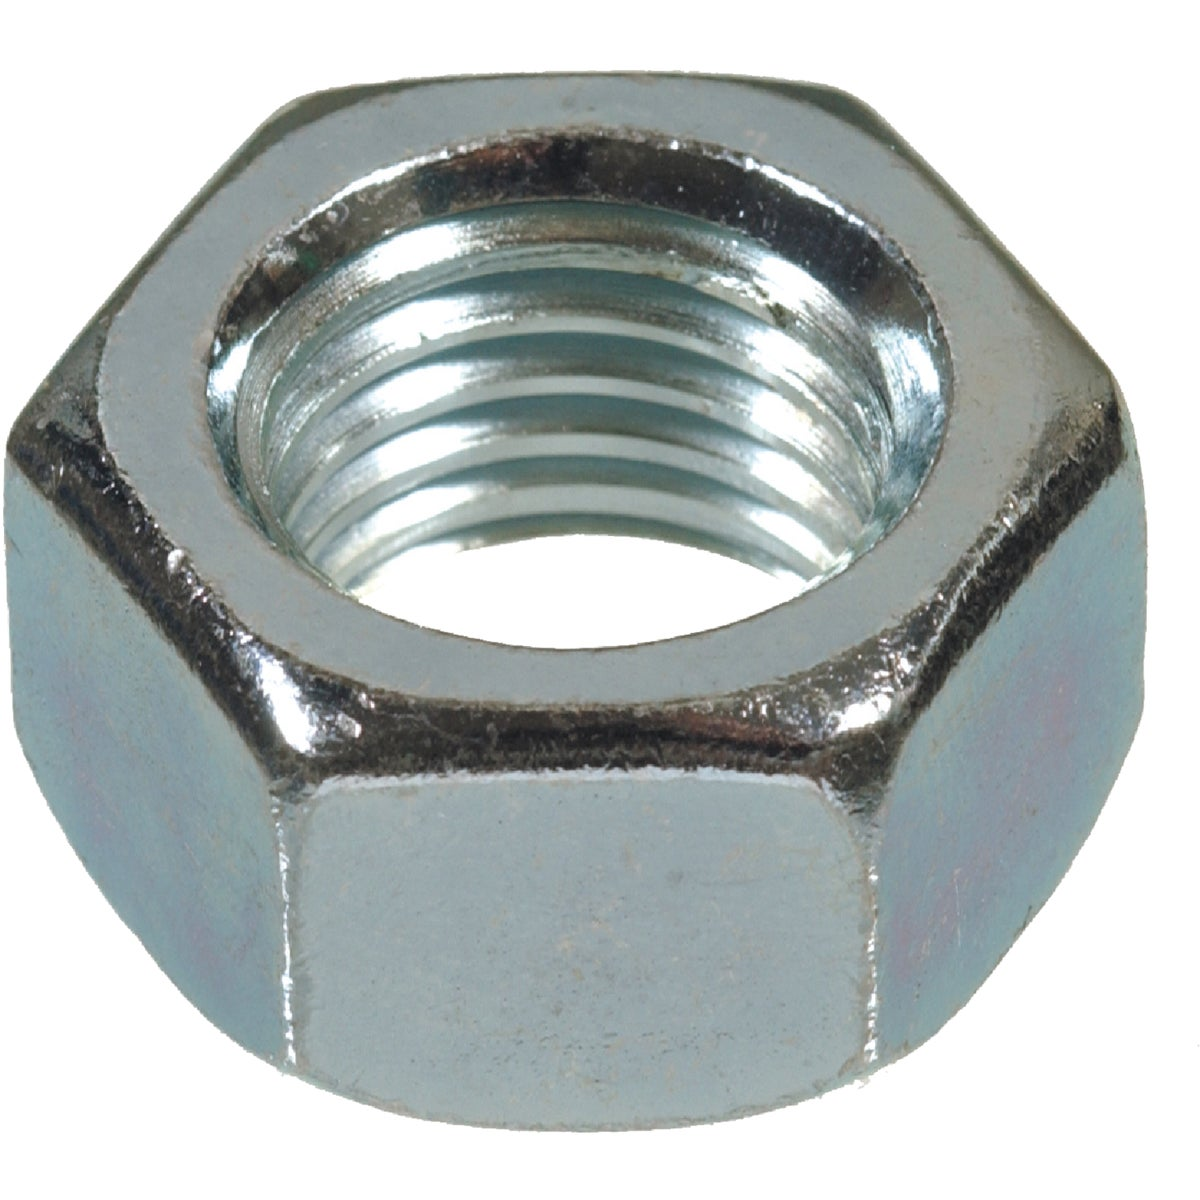 100PC 1/4-20 CRS HEX NUT - 160500 by Hillman Fastener